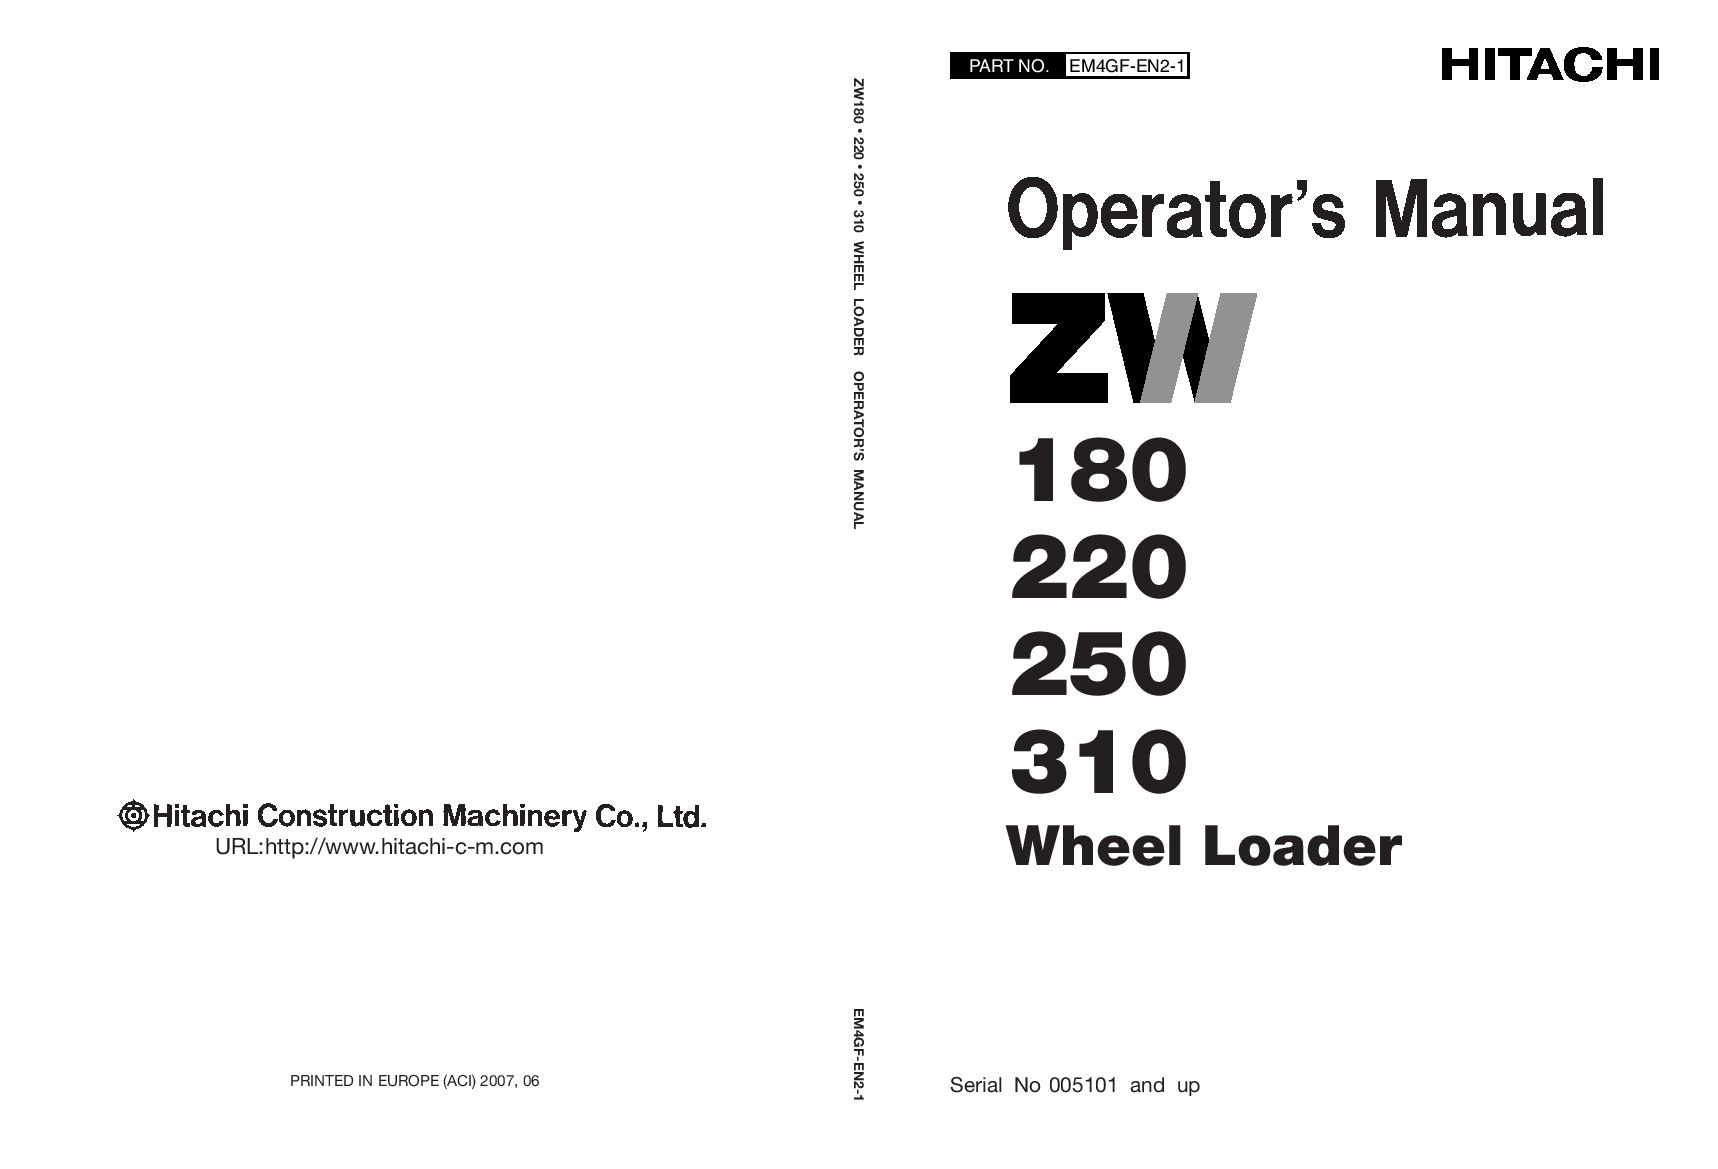 Hitachi Zw180 220 250 Zx310 Wheel Loader Operation And Maintenance Manual Pdf Download Service Manual Repair Manual Pdf Download Operation And Maintenance Hitachi Repair Manuals